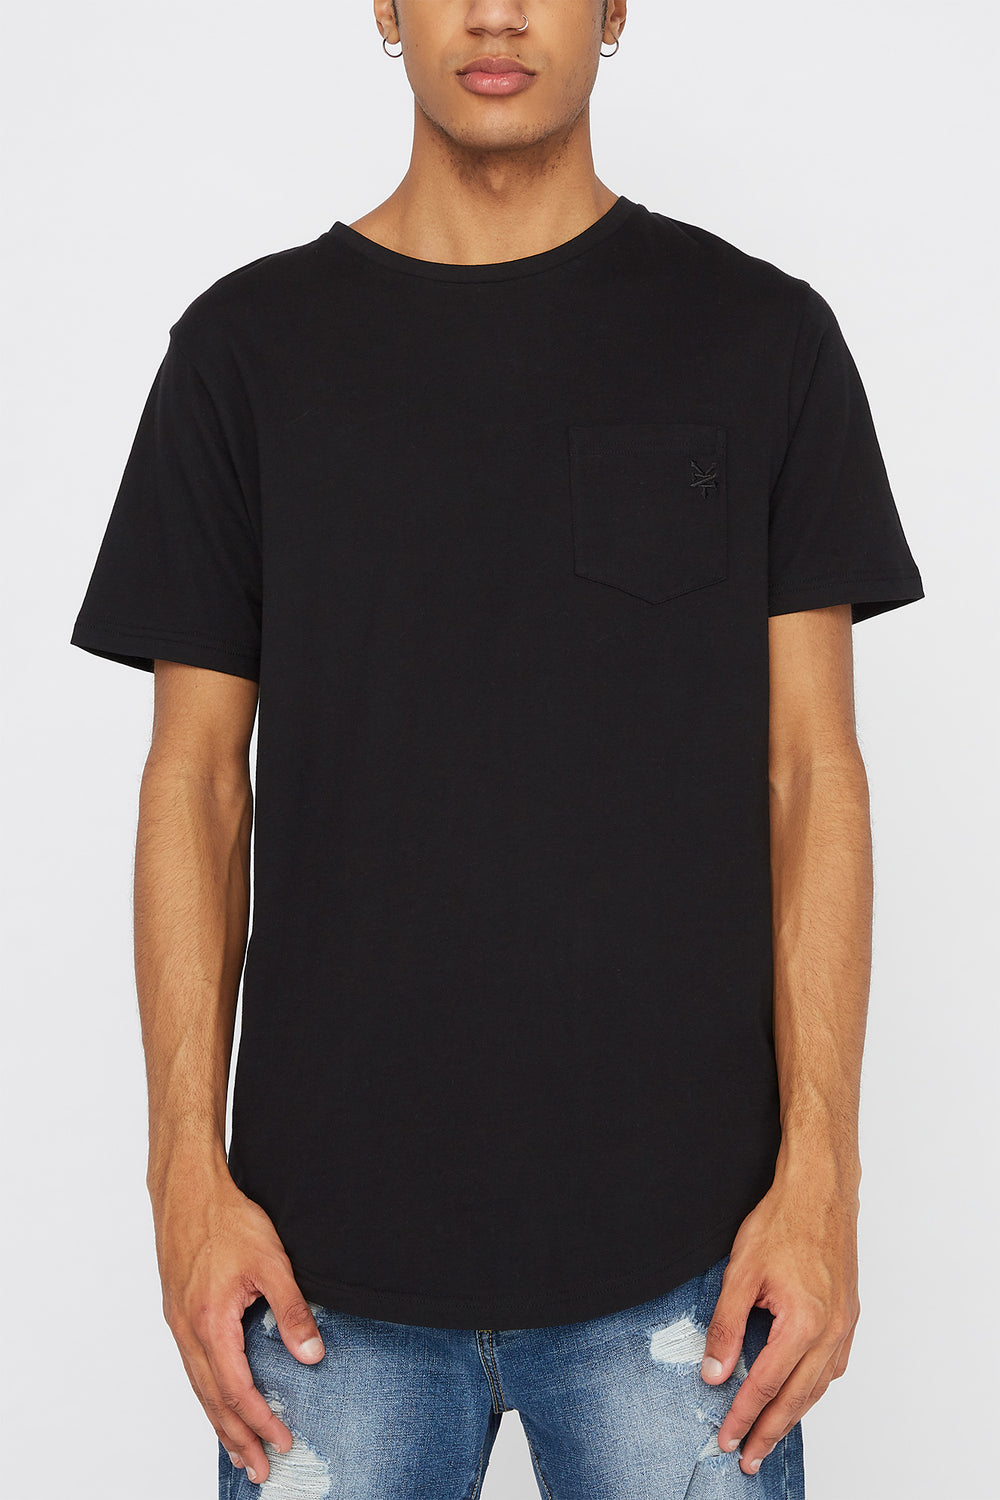 Zoo York Mens Pocket T-Shirt Black